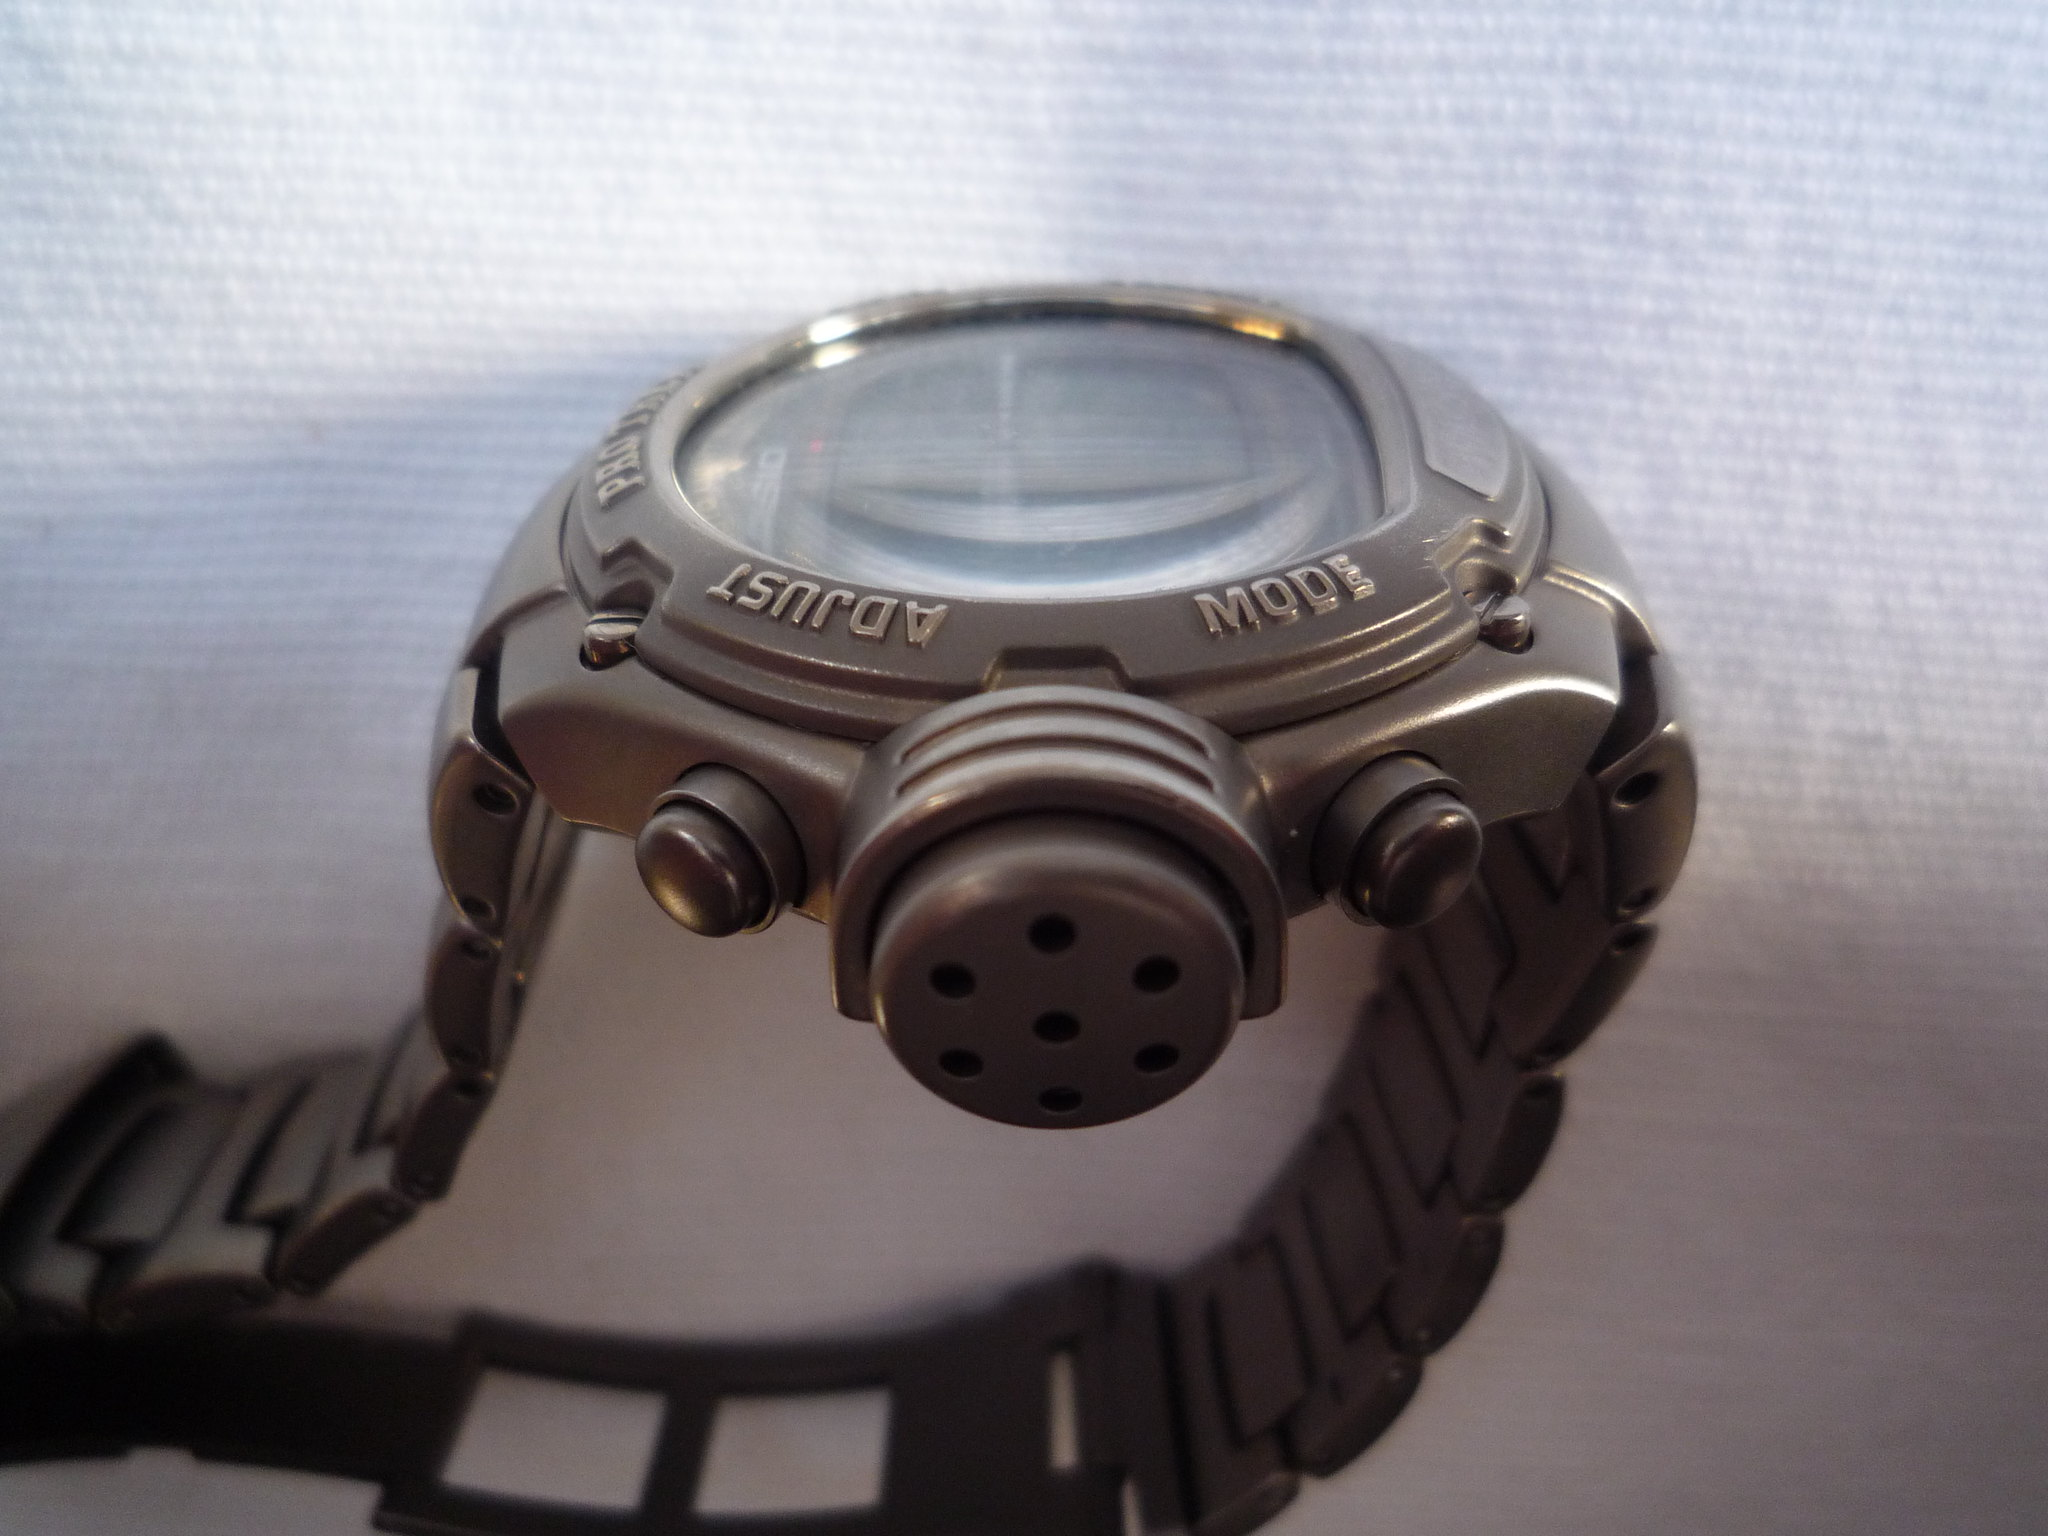 select watches offer obsolete an watch sport same features abc altimeter like made by peak distance the gps ambit suunto as